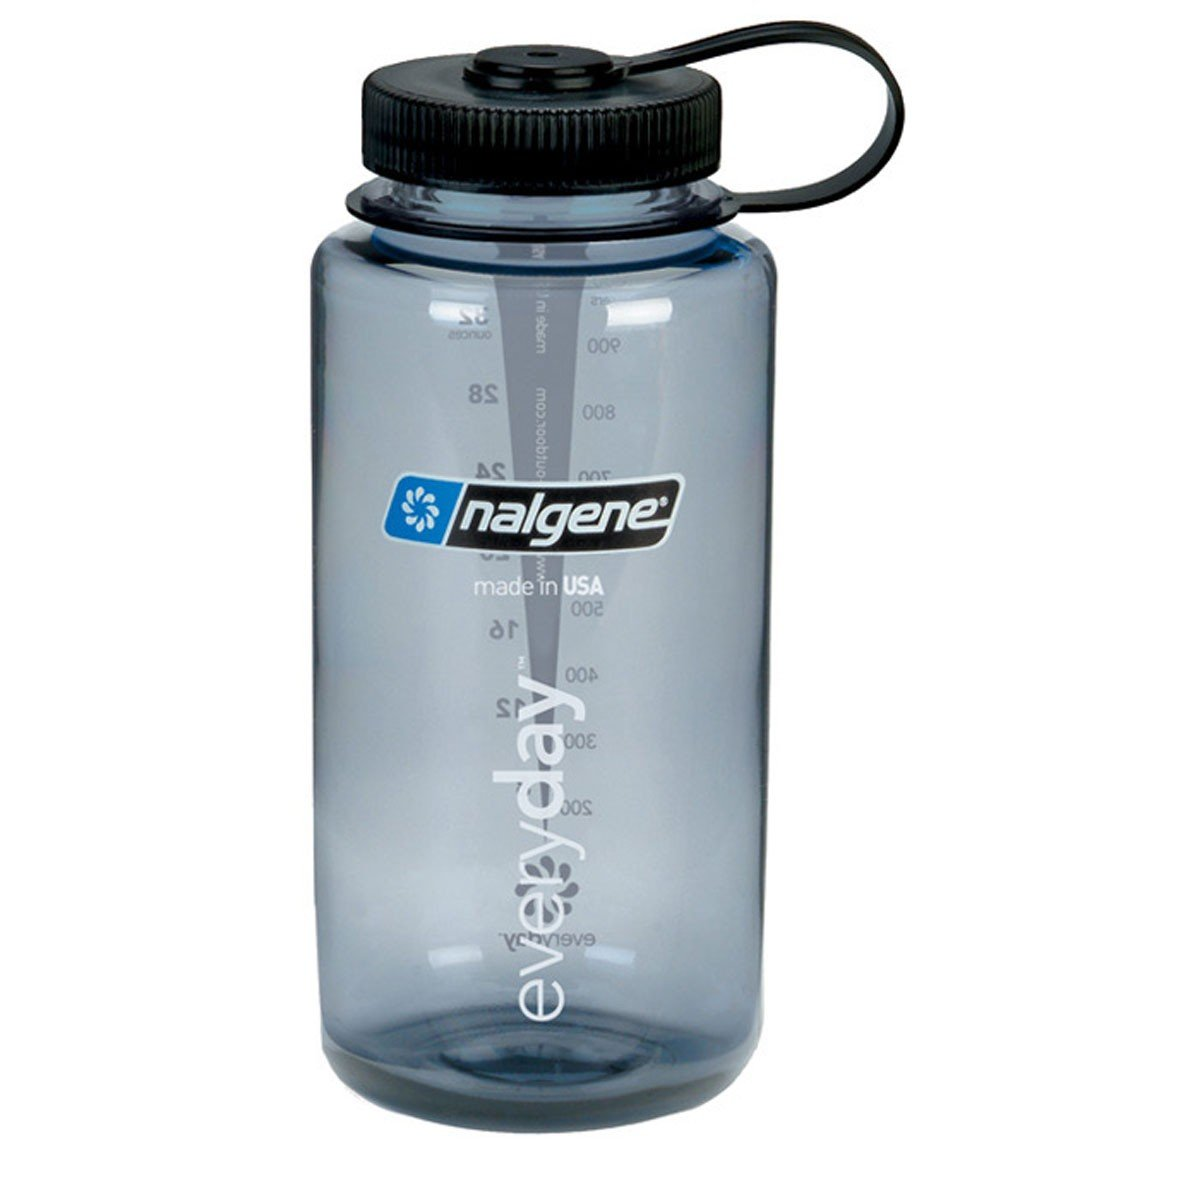 Nalgene Tritan Wide Mouth BPA-Free Water Bottle, 32 Oz, Grey w Black